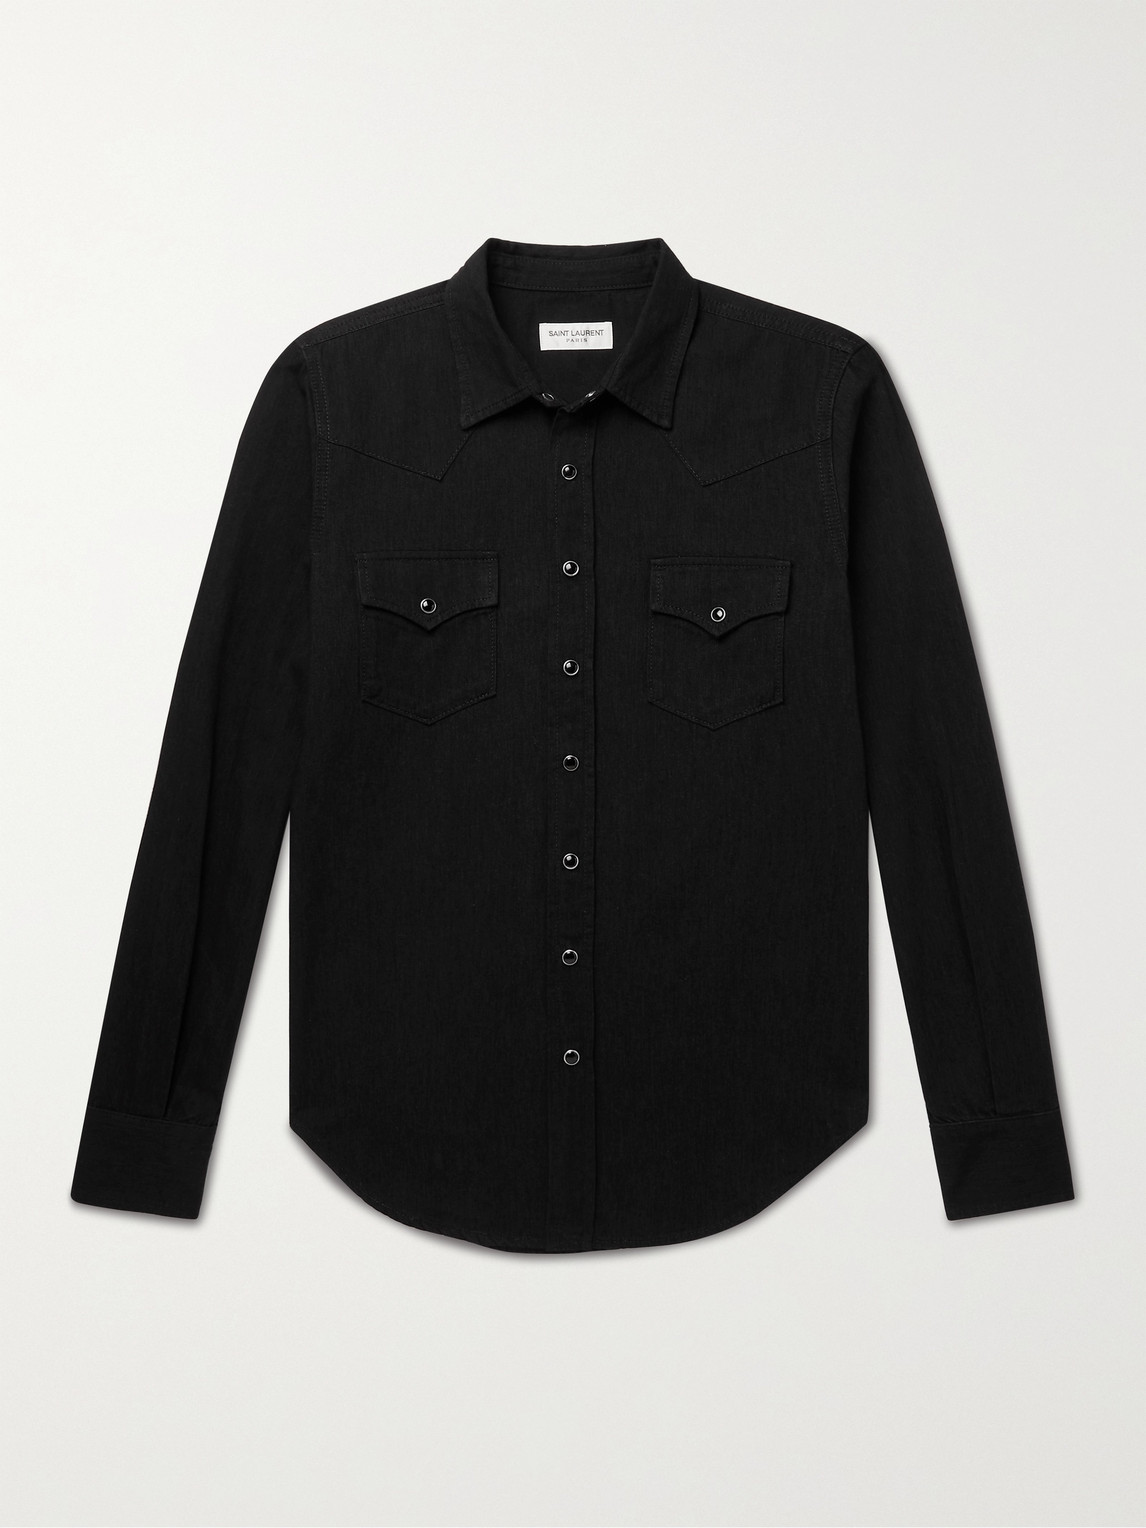 Saint Laurent Jeans SLIM-FIT DENIM WESTERN SHIRT